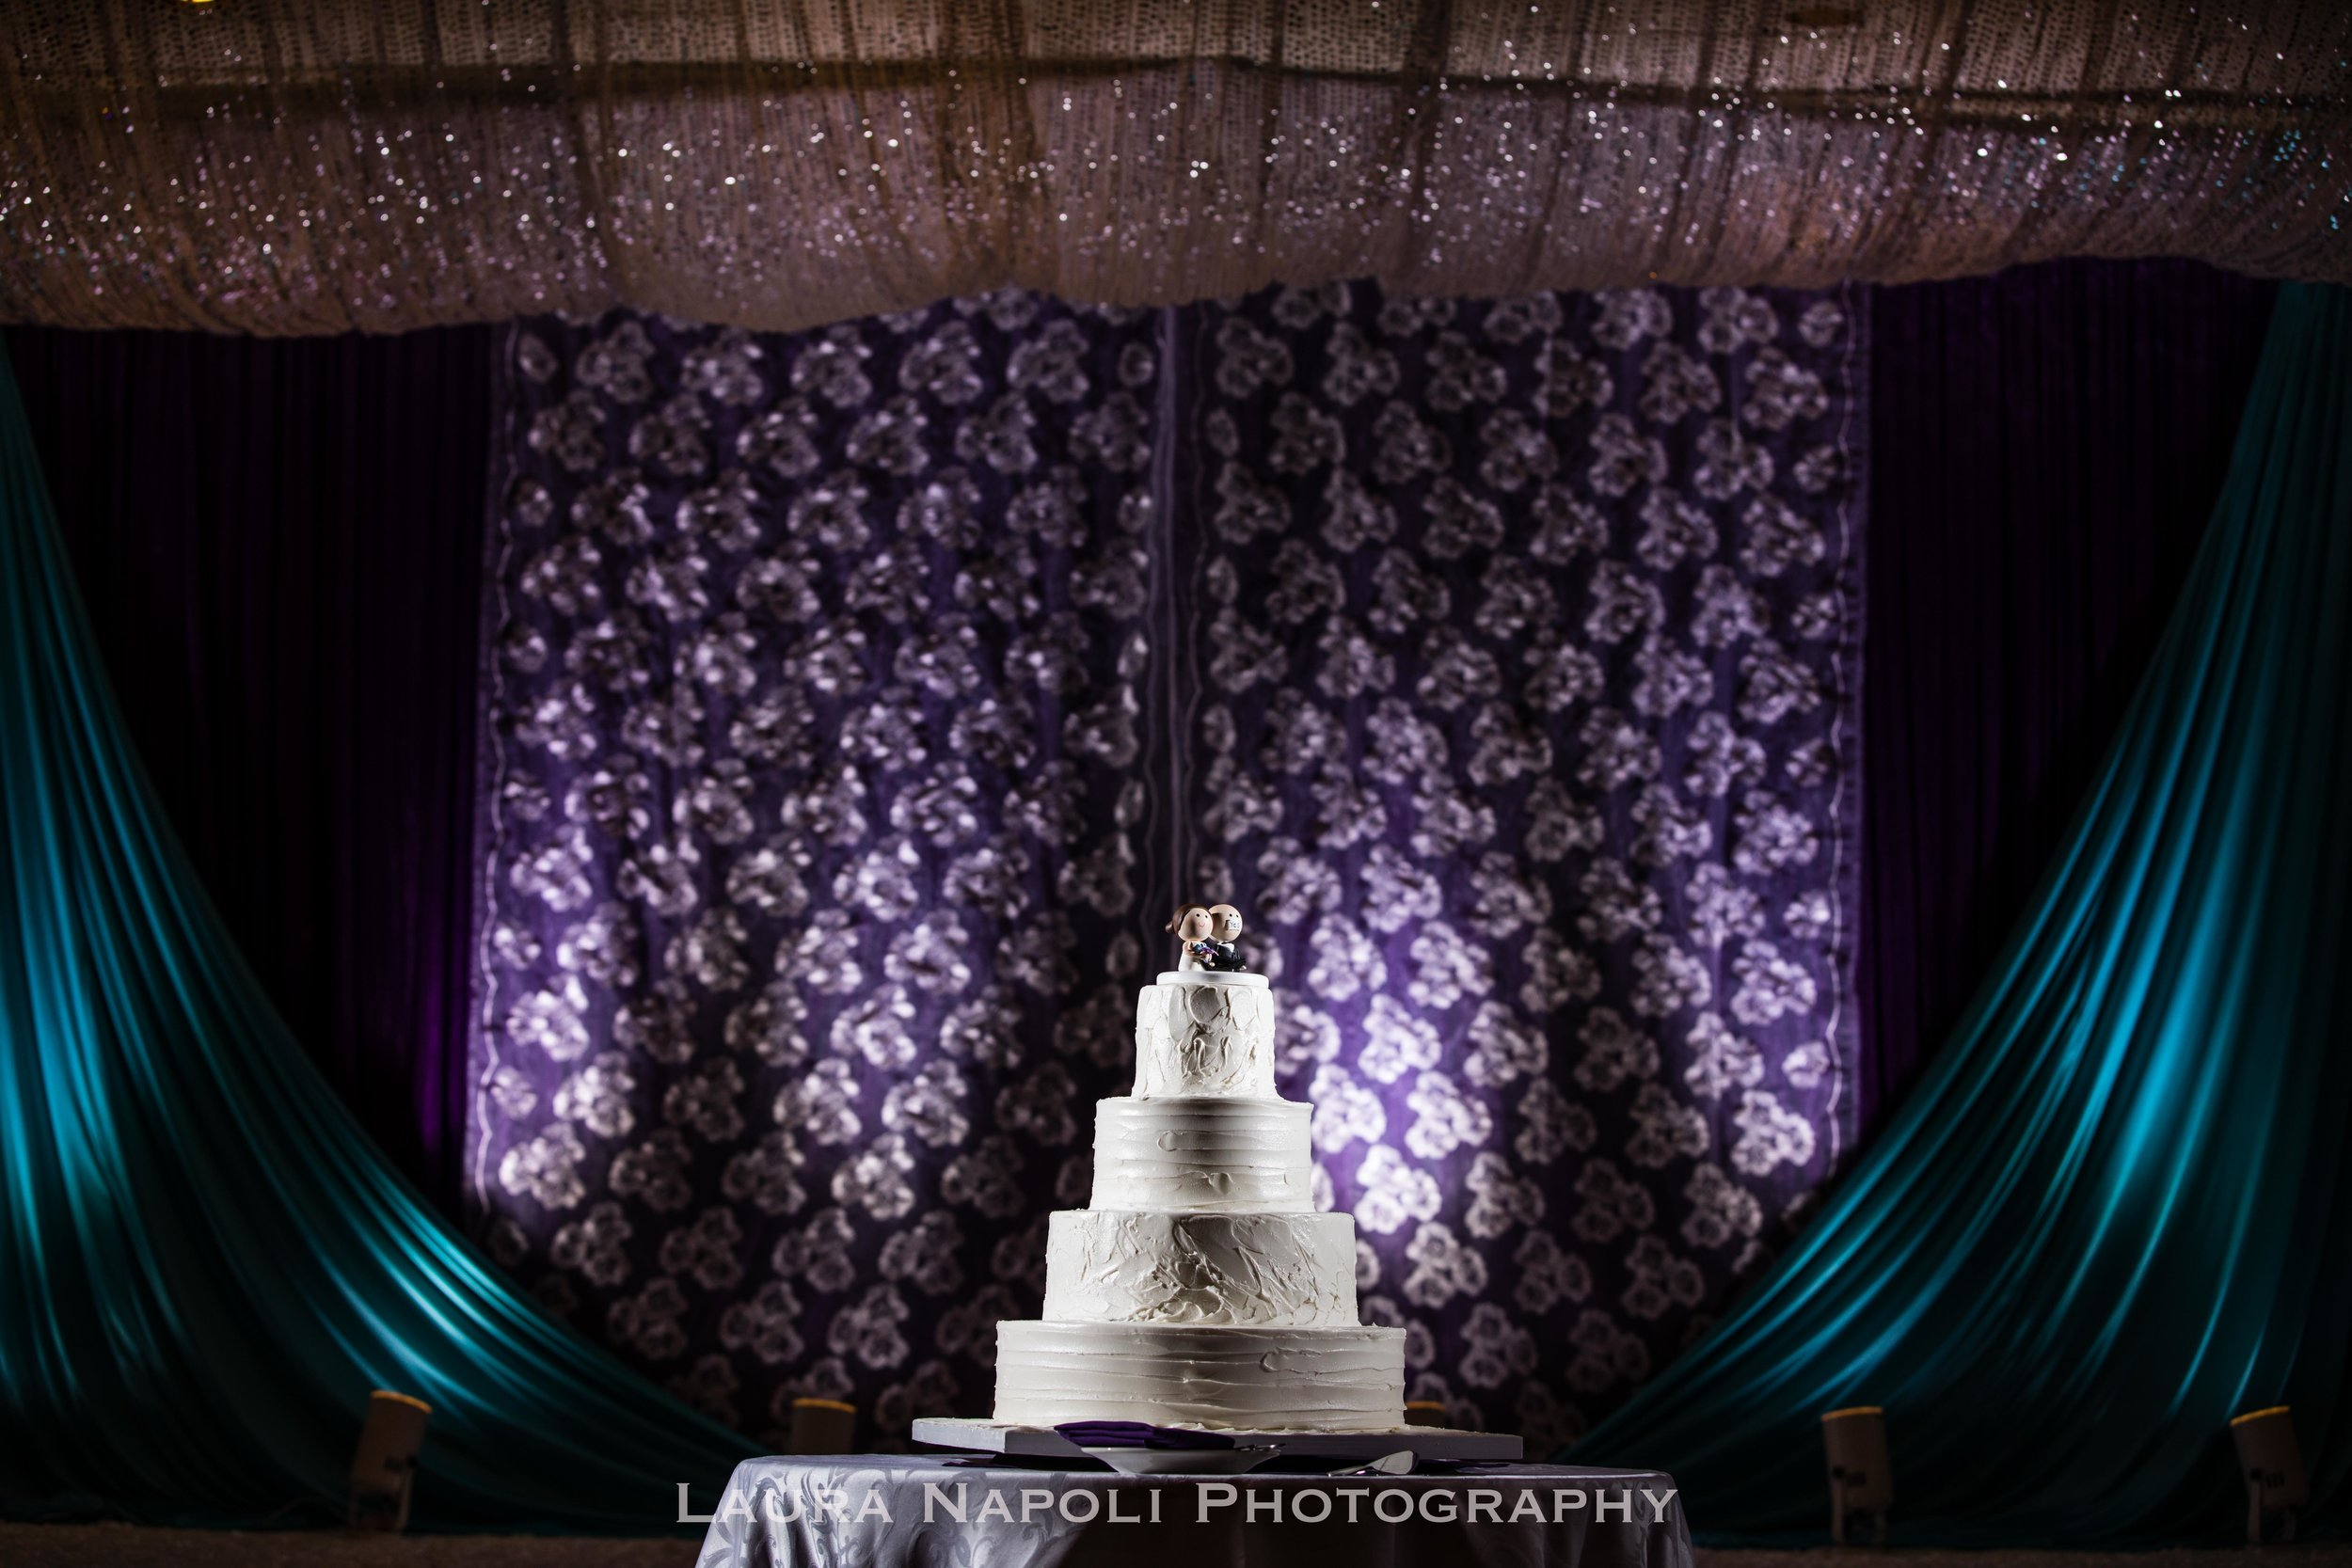 philadelphiaweddingphotographerphiladelphiaweddings-43.jpg